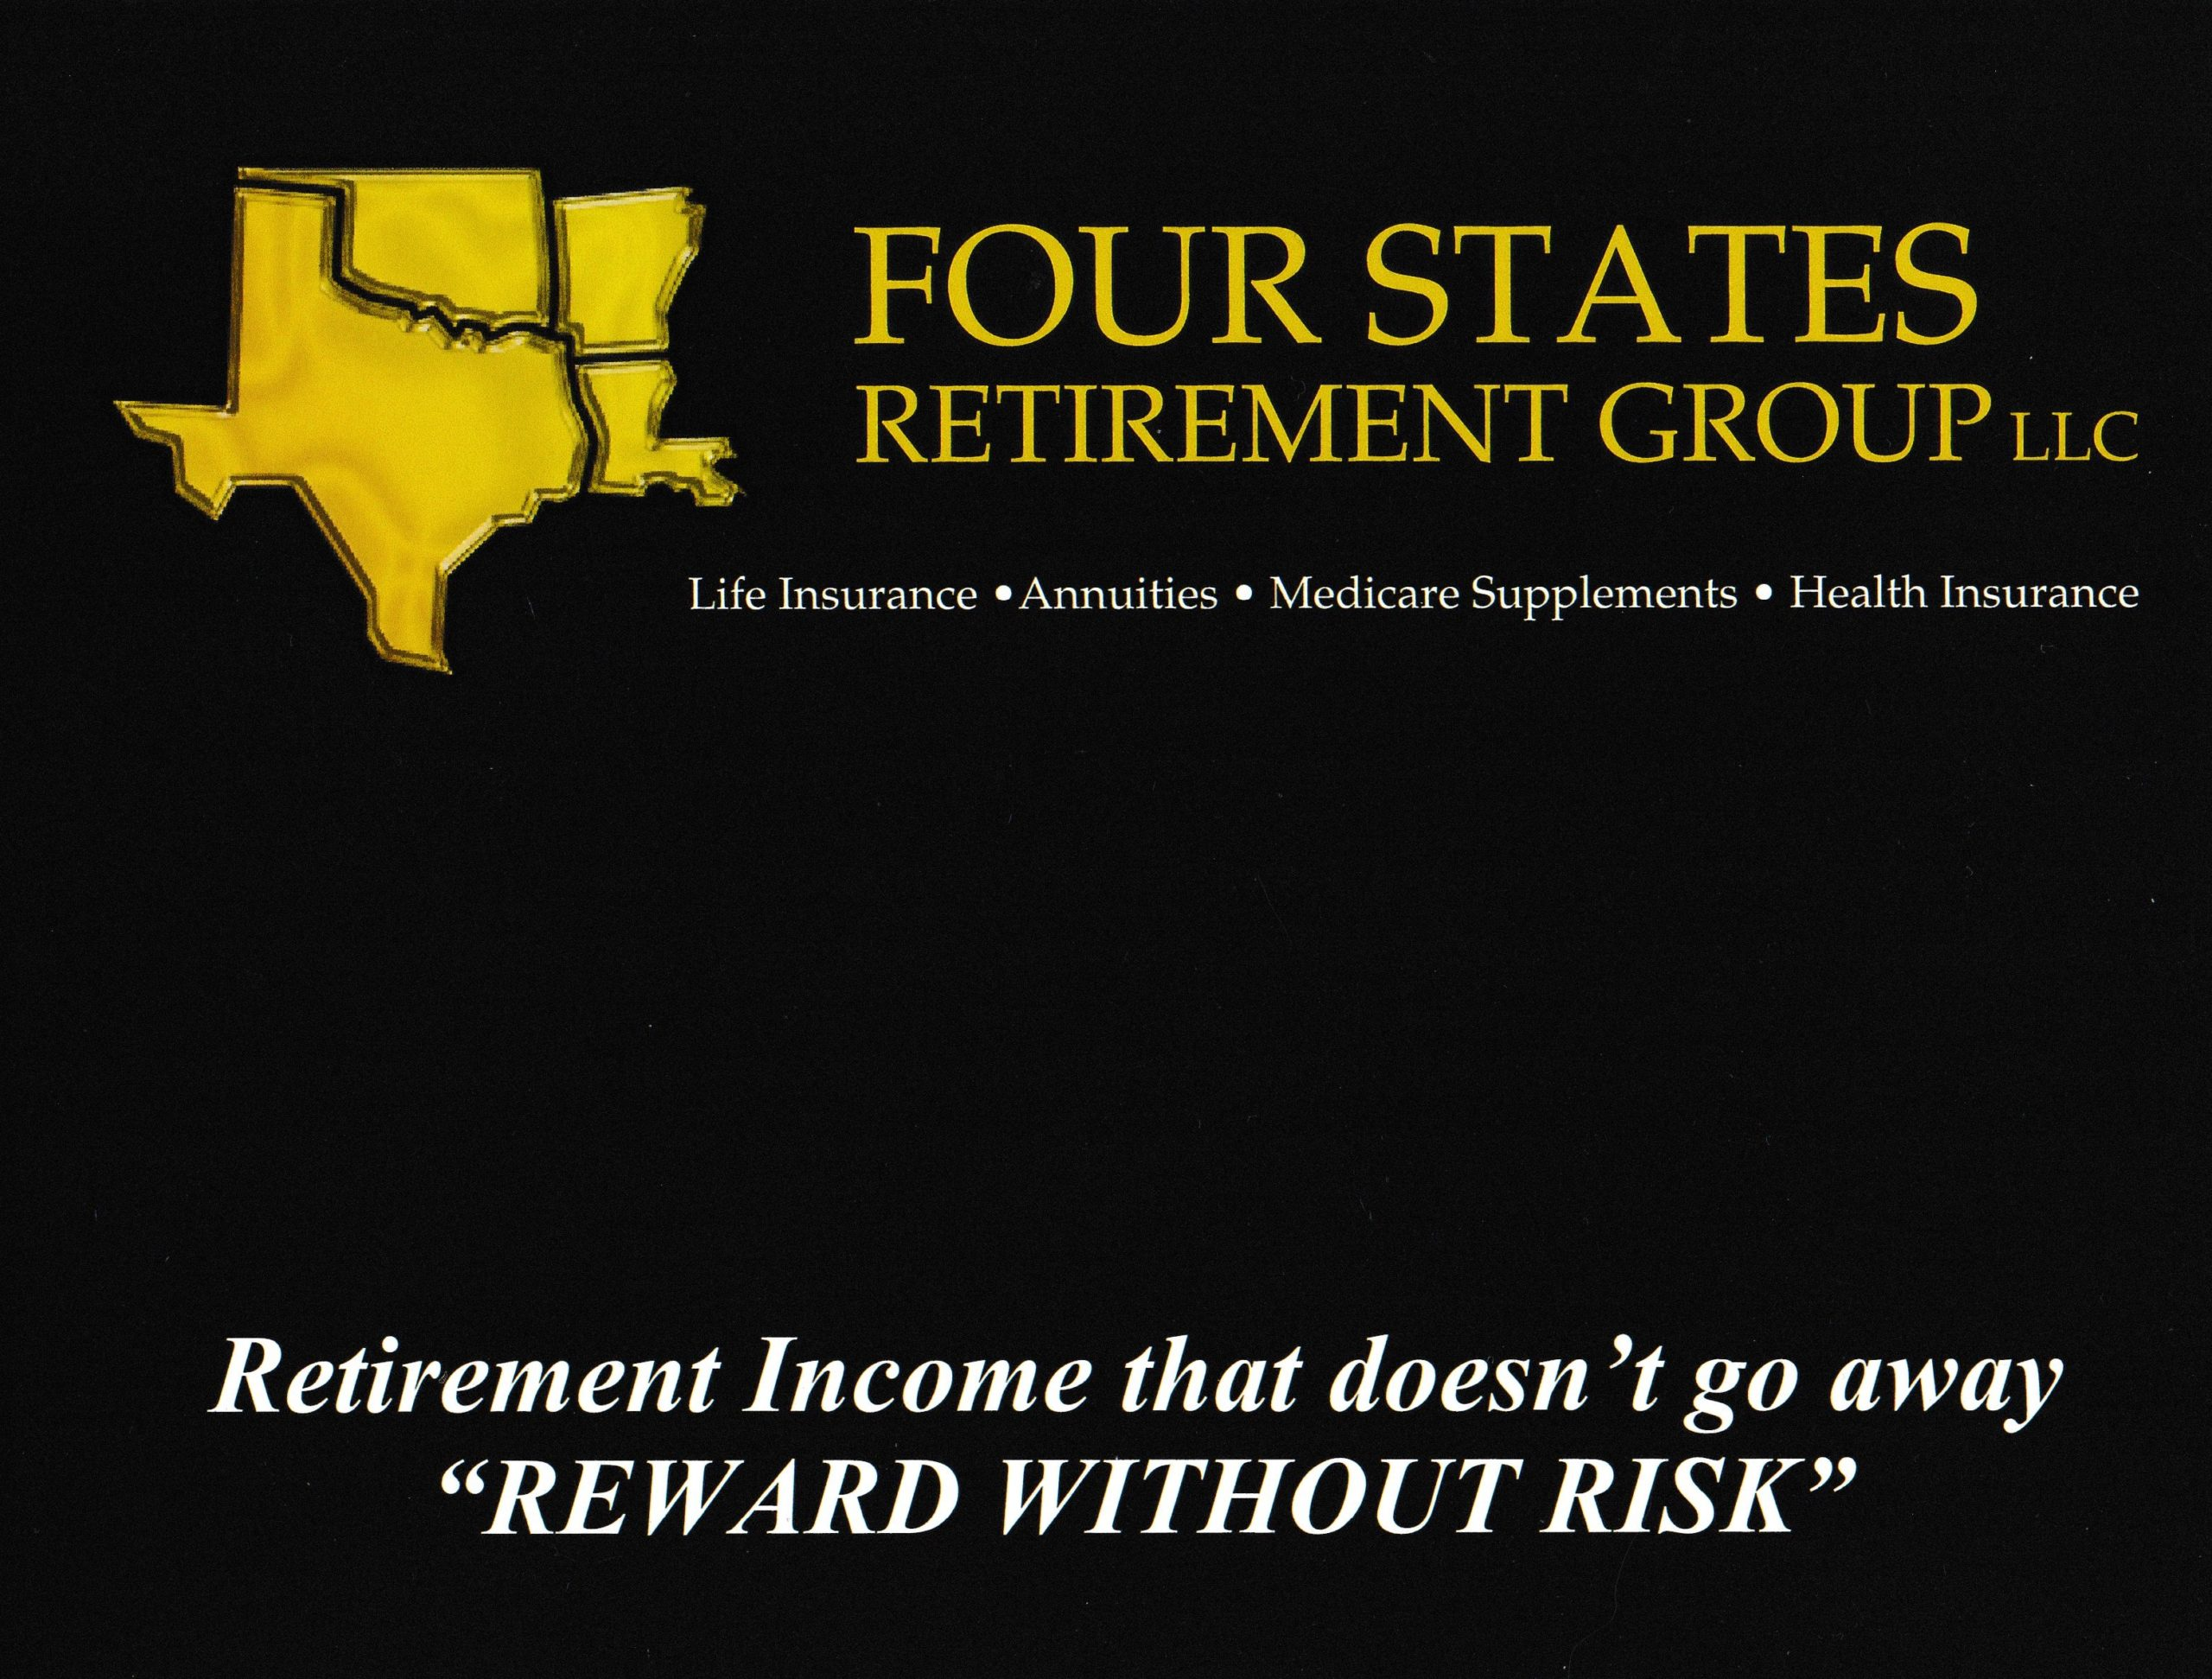 Four States Retirement Group